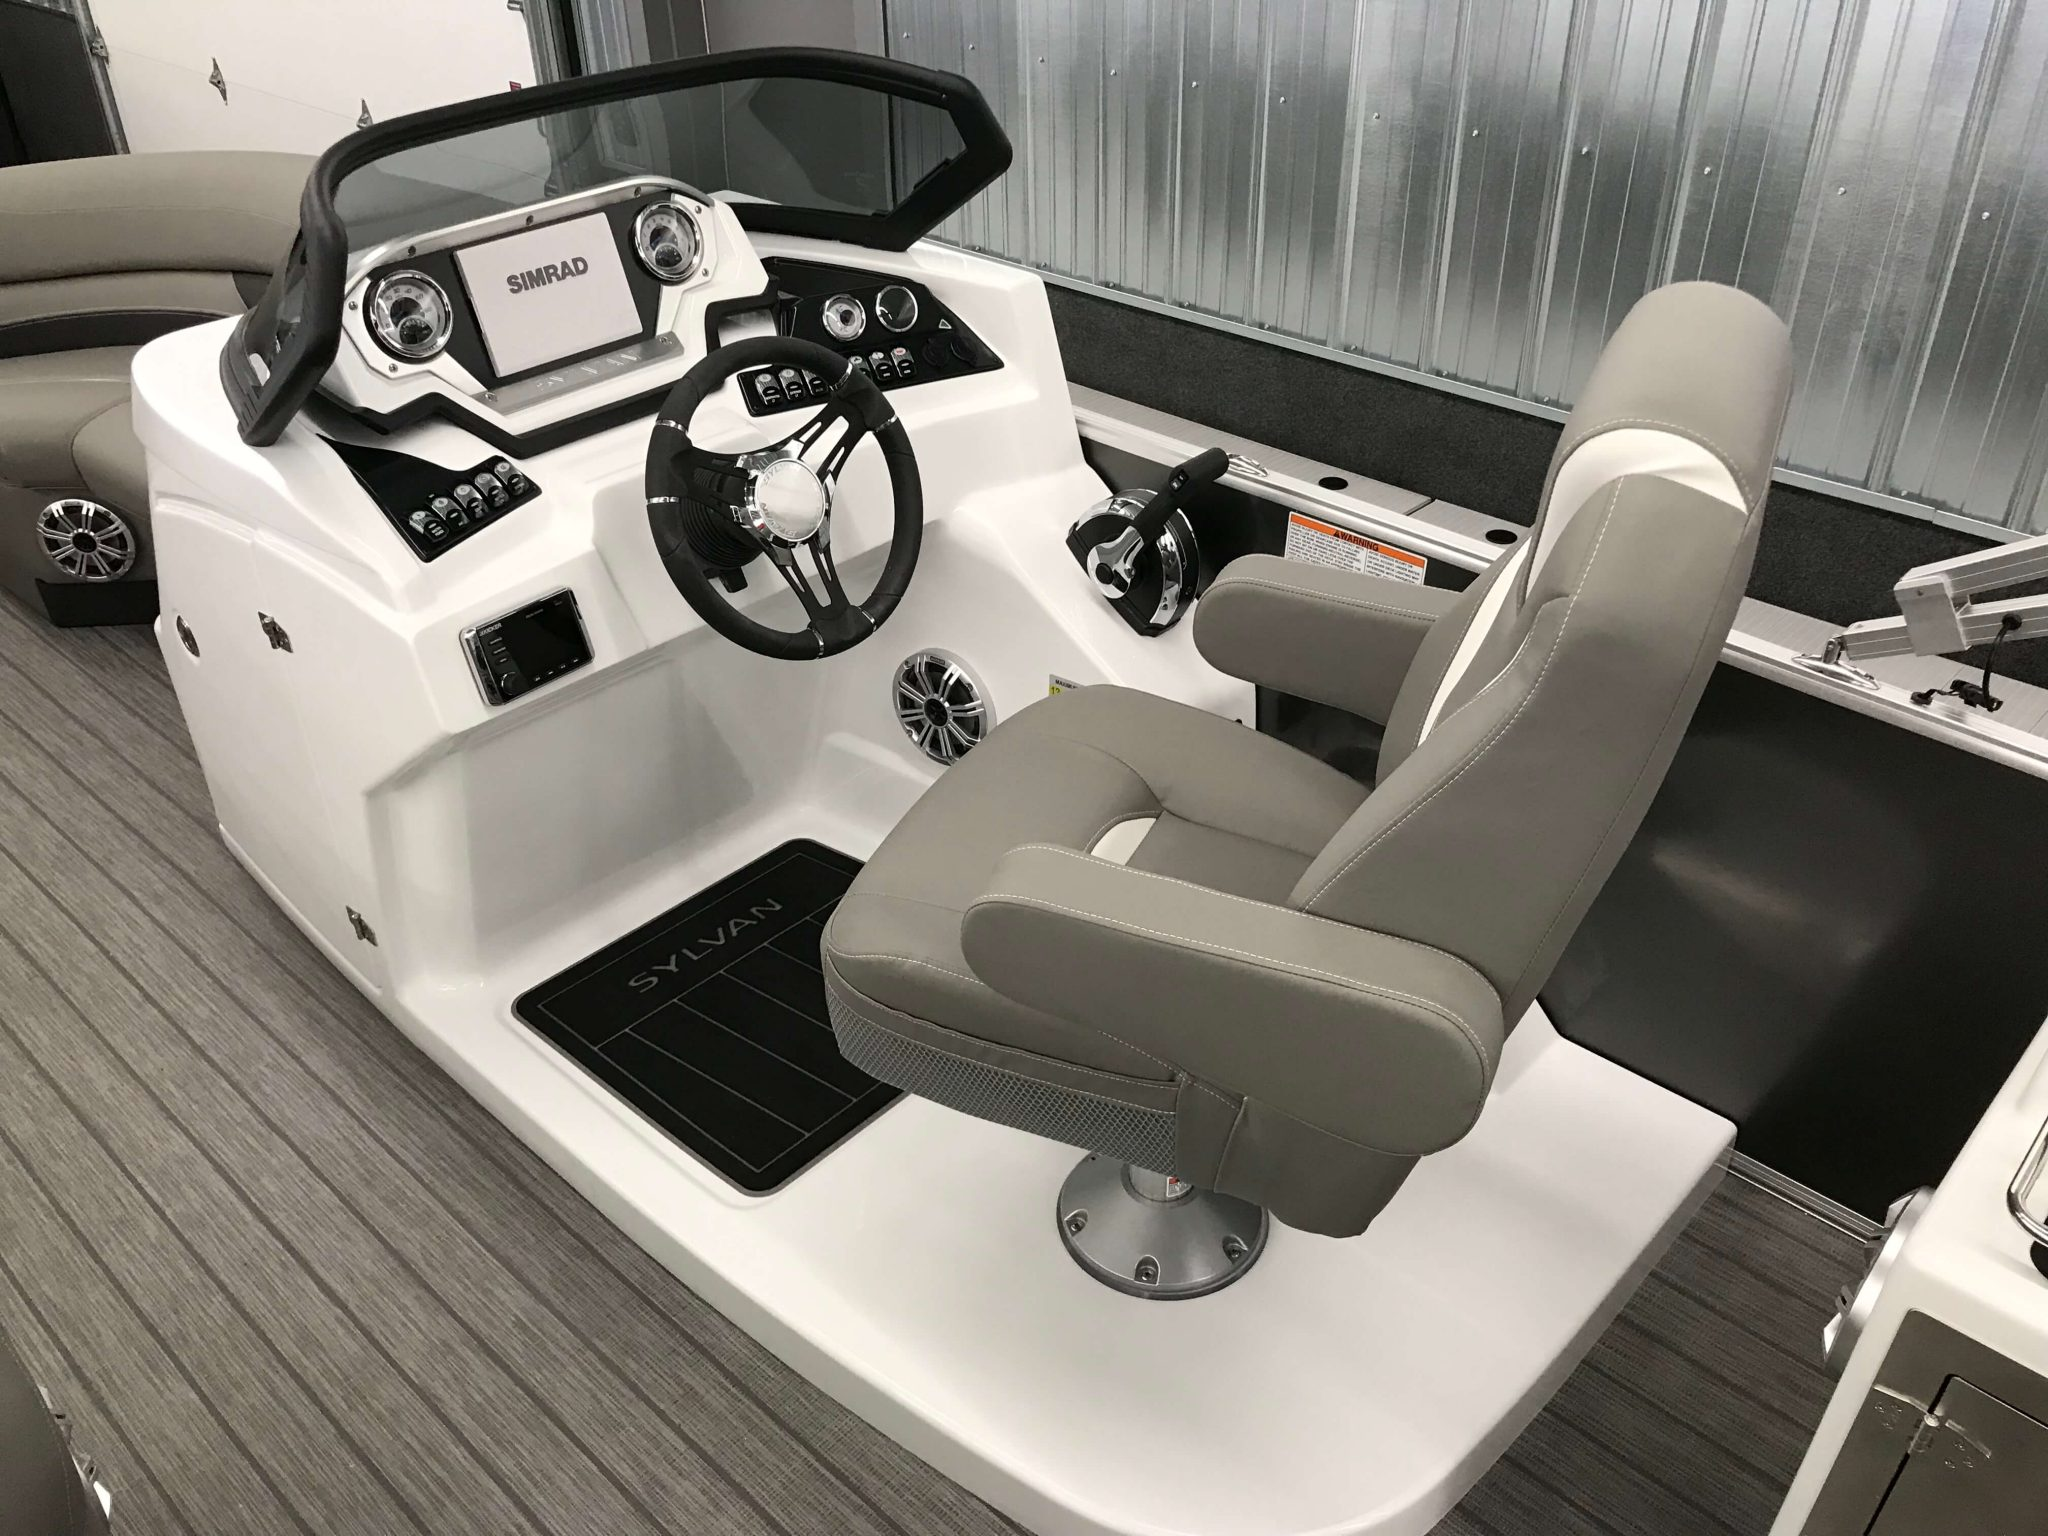 2019 Sylvan S3 Cruise Tritoon Helm And Captains Chair